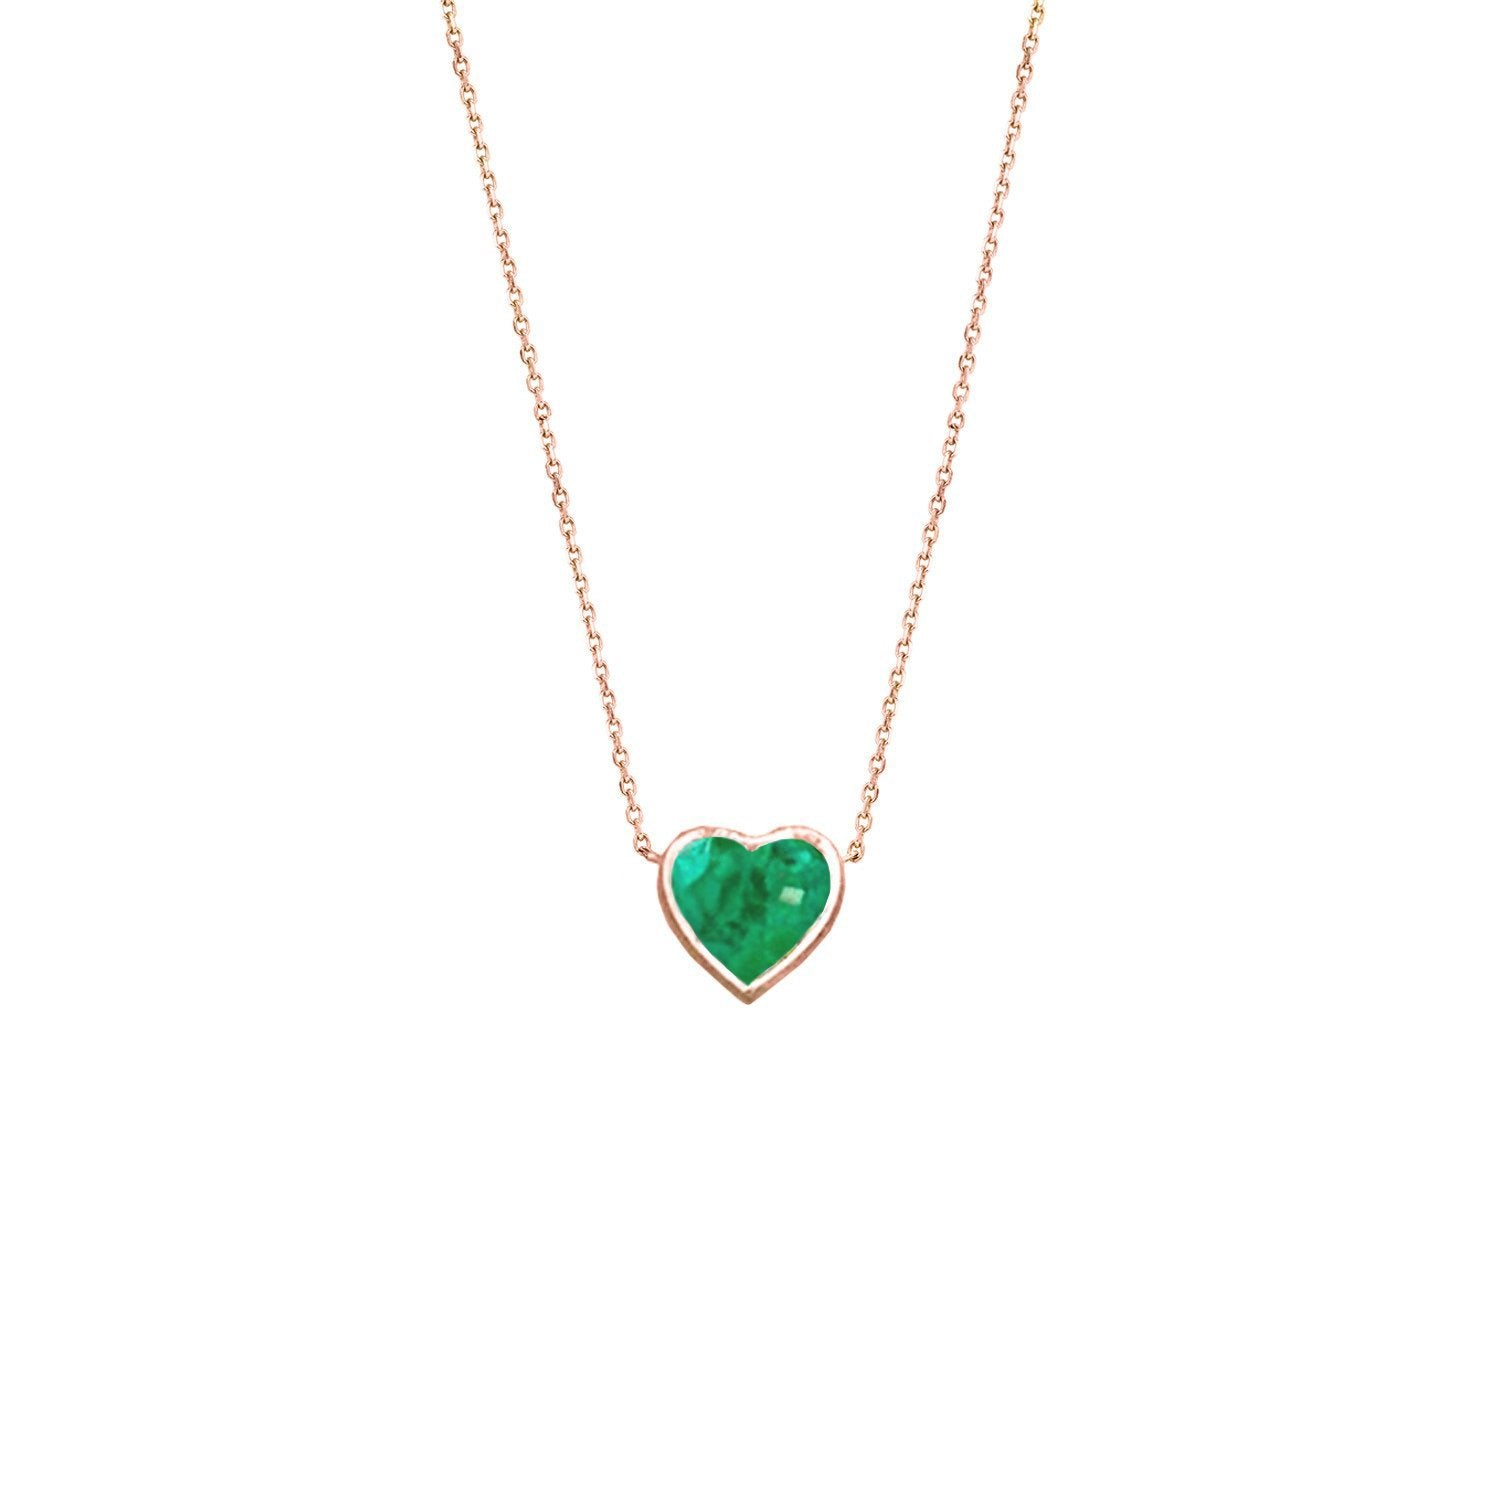 New floating heart shaped emerald necklace logan hollowell jewelry floating heart shaped emerald necklace aloadofball